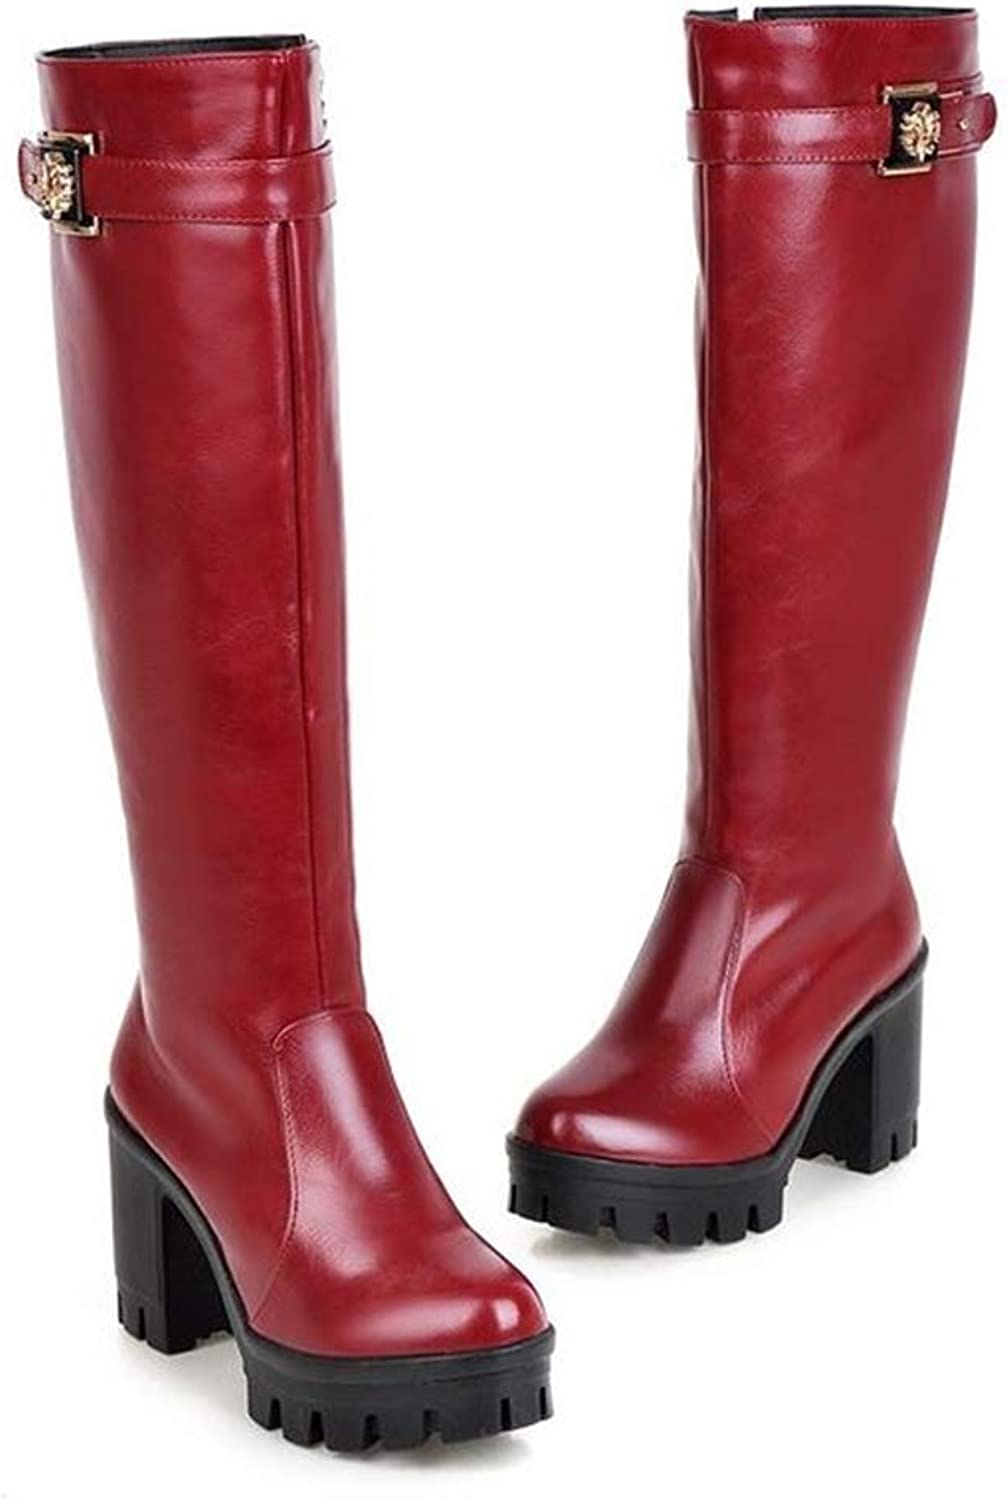 Zgshnfgk Woman's Knight Boots Chunky Heel Bright Leather high Boots Winter Boots